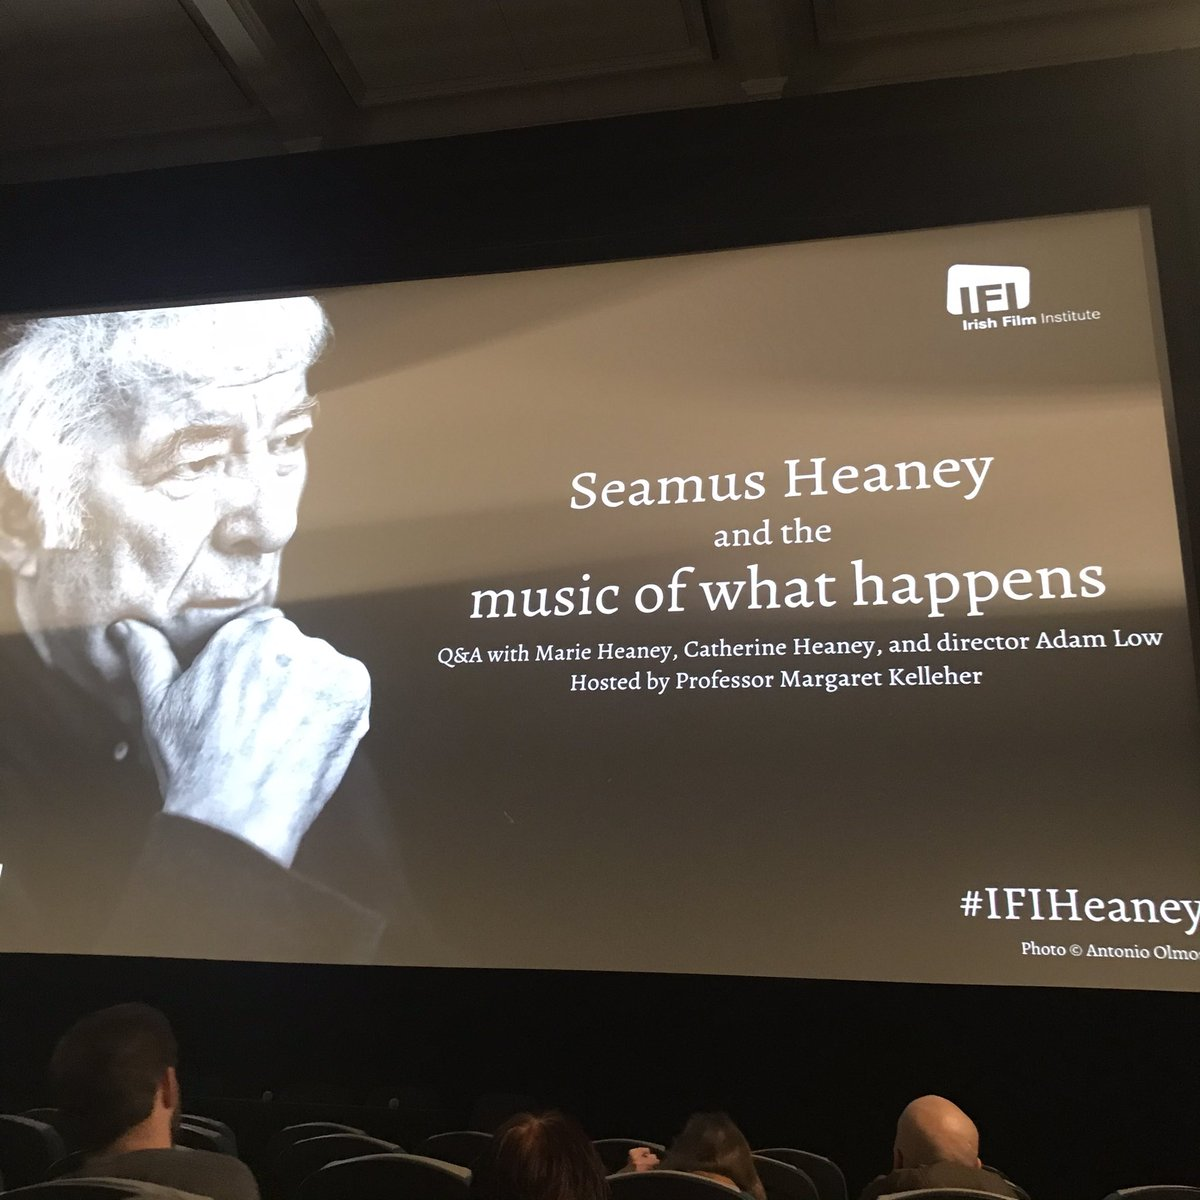 Here we go! Looking forward to another great screening of SH and the Music of What Happens @IFI_Dub!